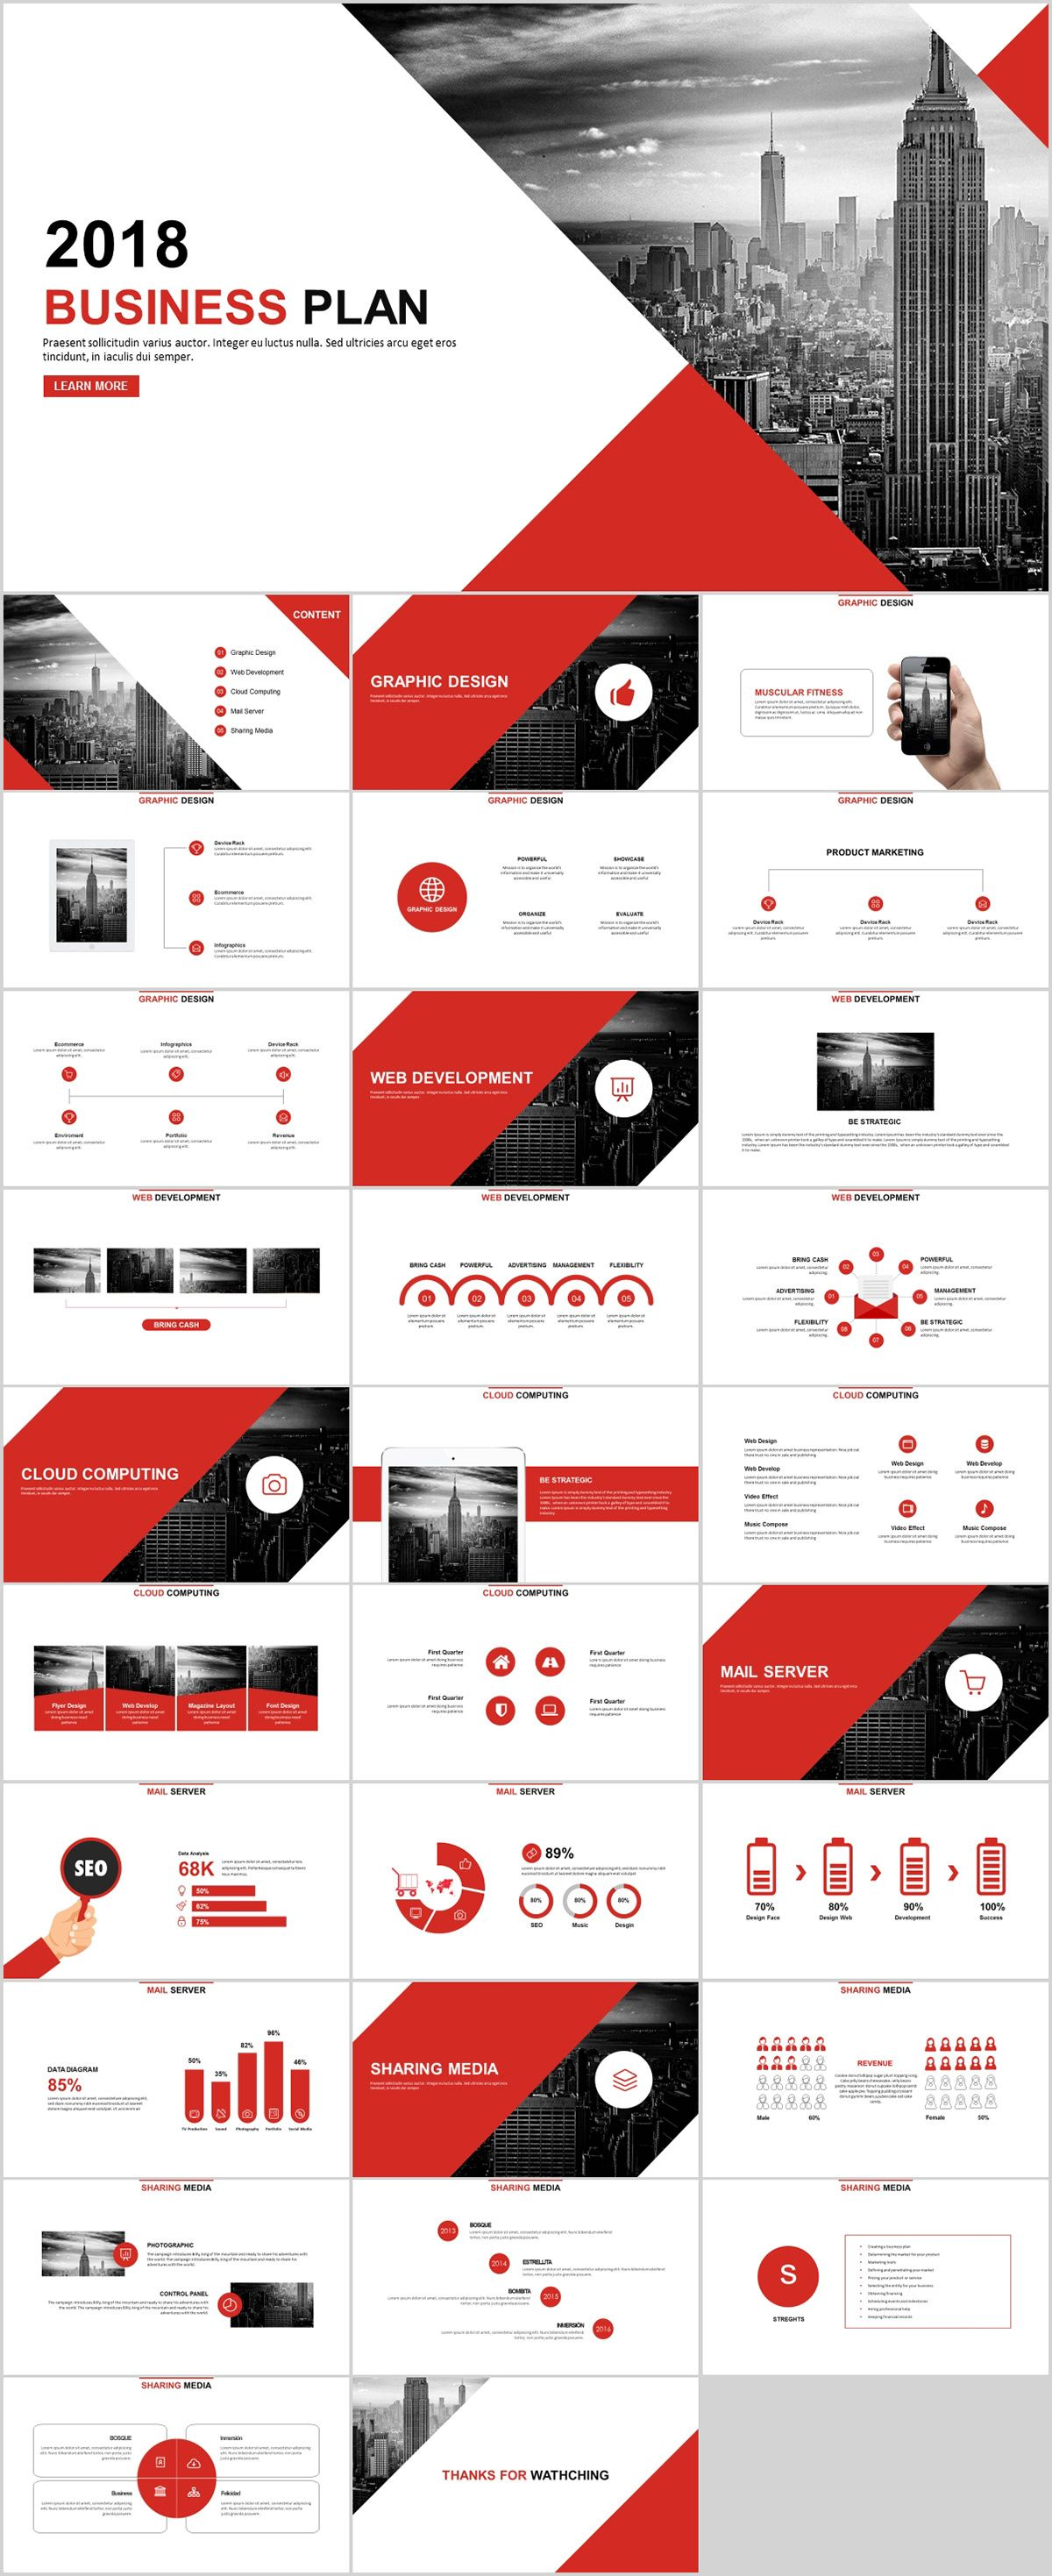 30 red year report charts powerpoint template on behance 30 red year report charts powerpoint template on behance powerpoint templates presentation animation backgrounds pptwork annual report toneelgroepblik Gallery